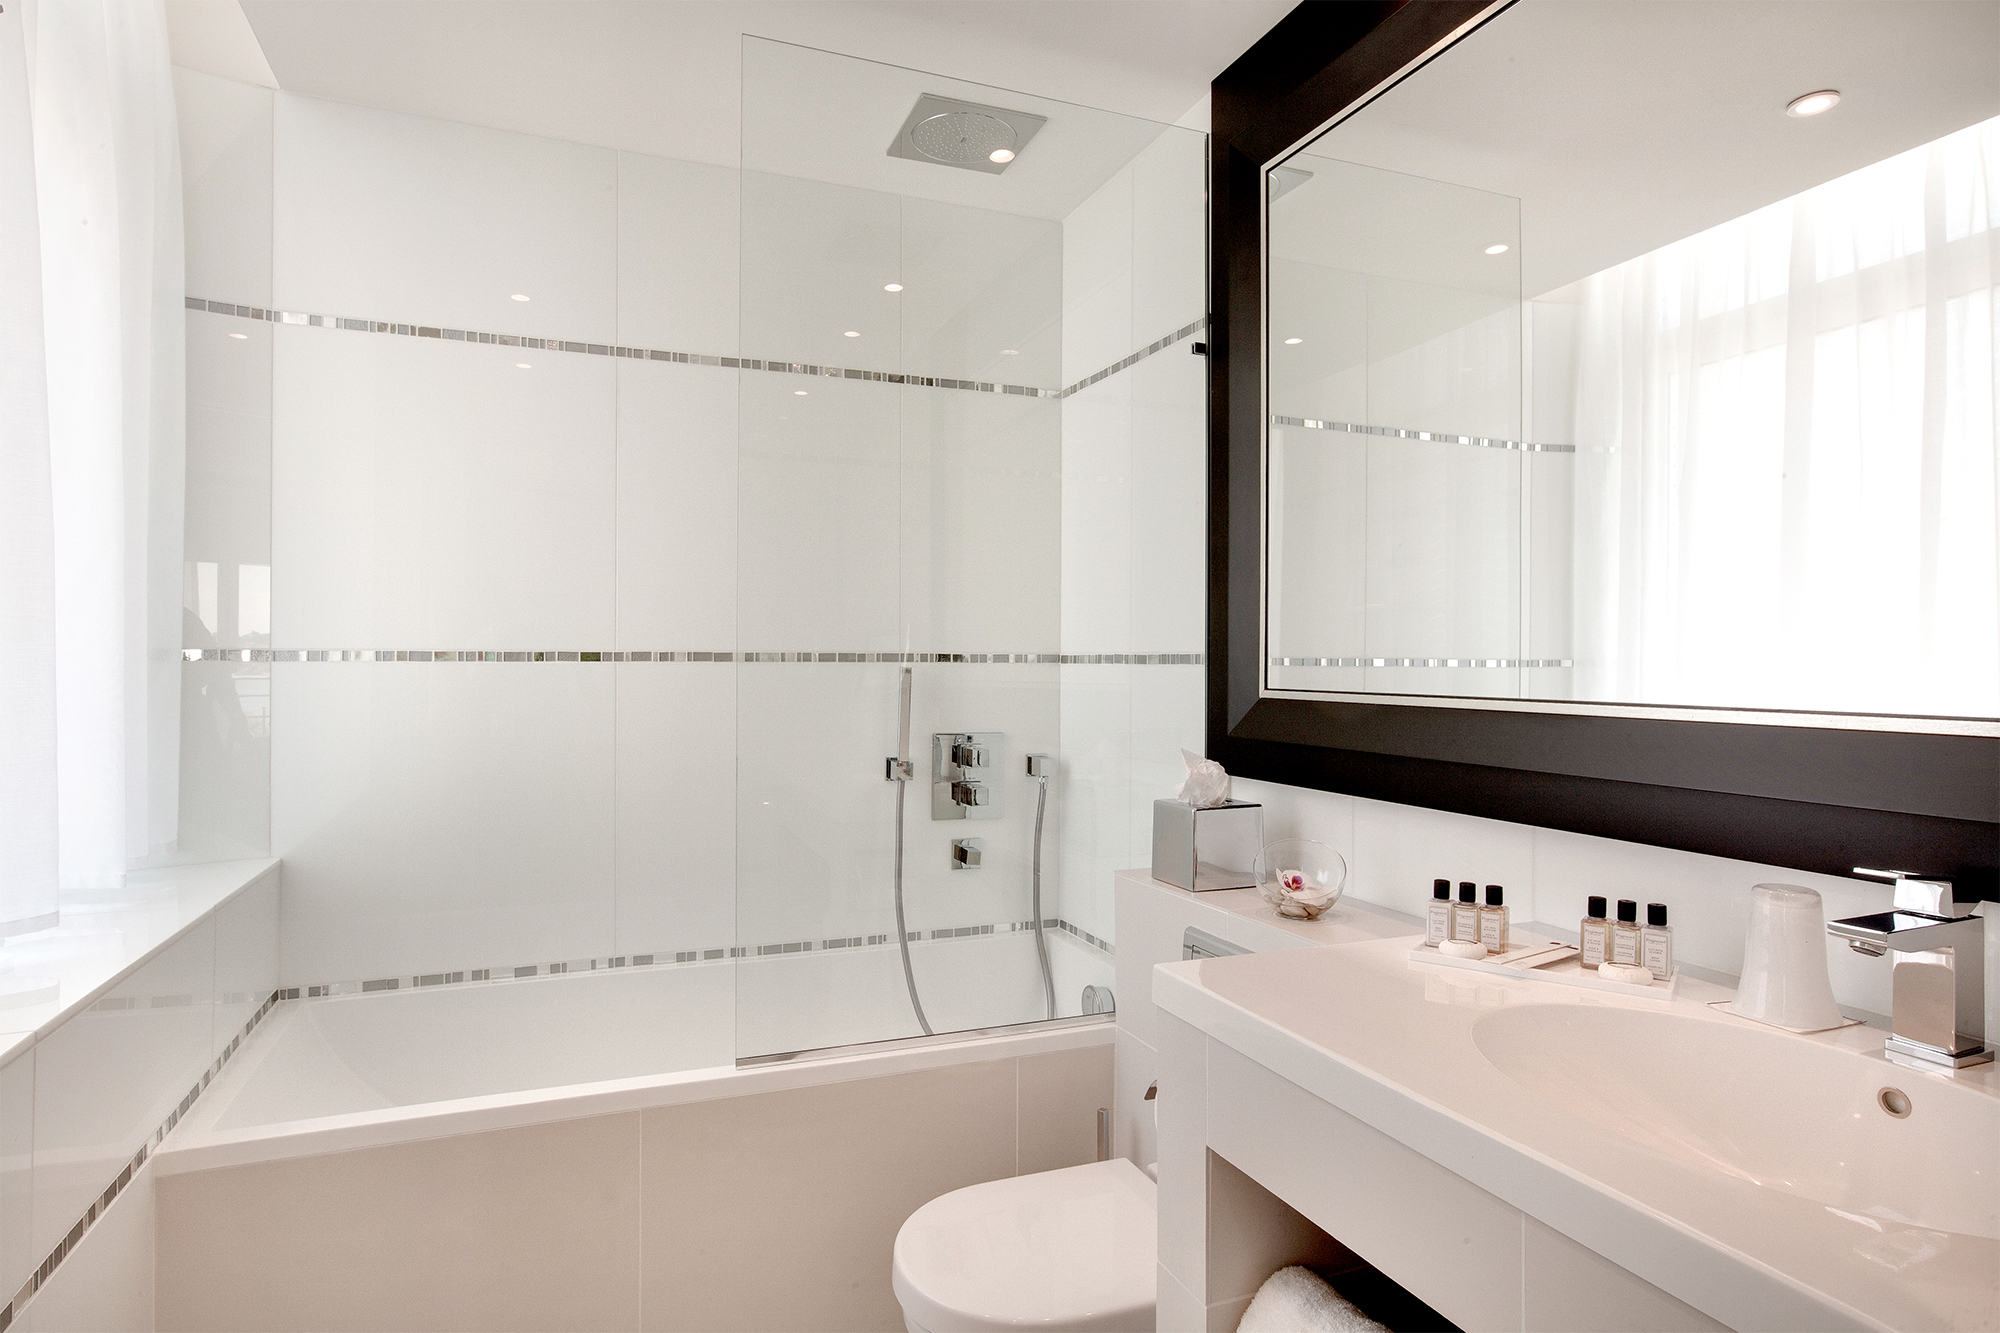 Salle De Bain Chambre salle-de-bain-chambre-ocean-hotel-5-etoiles-luxe-cote-basque